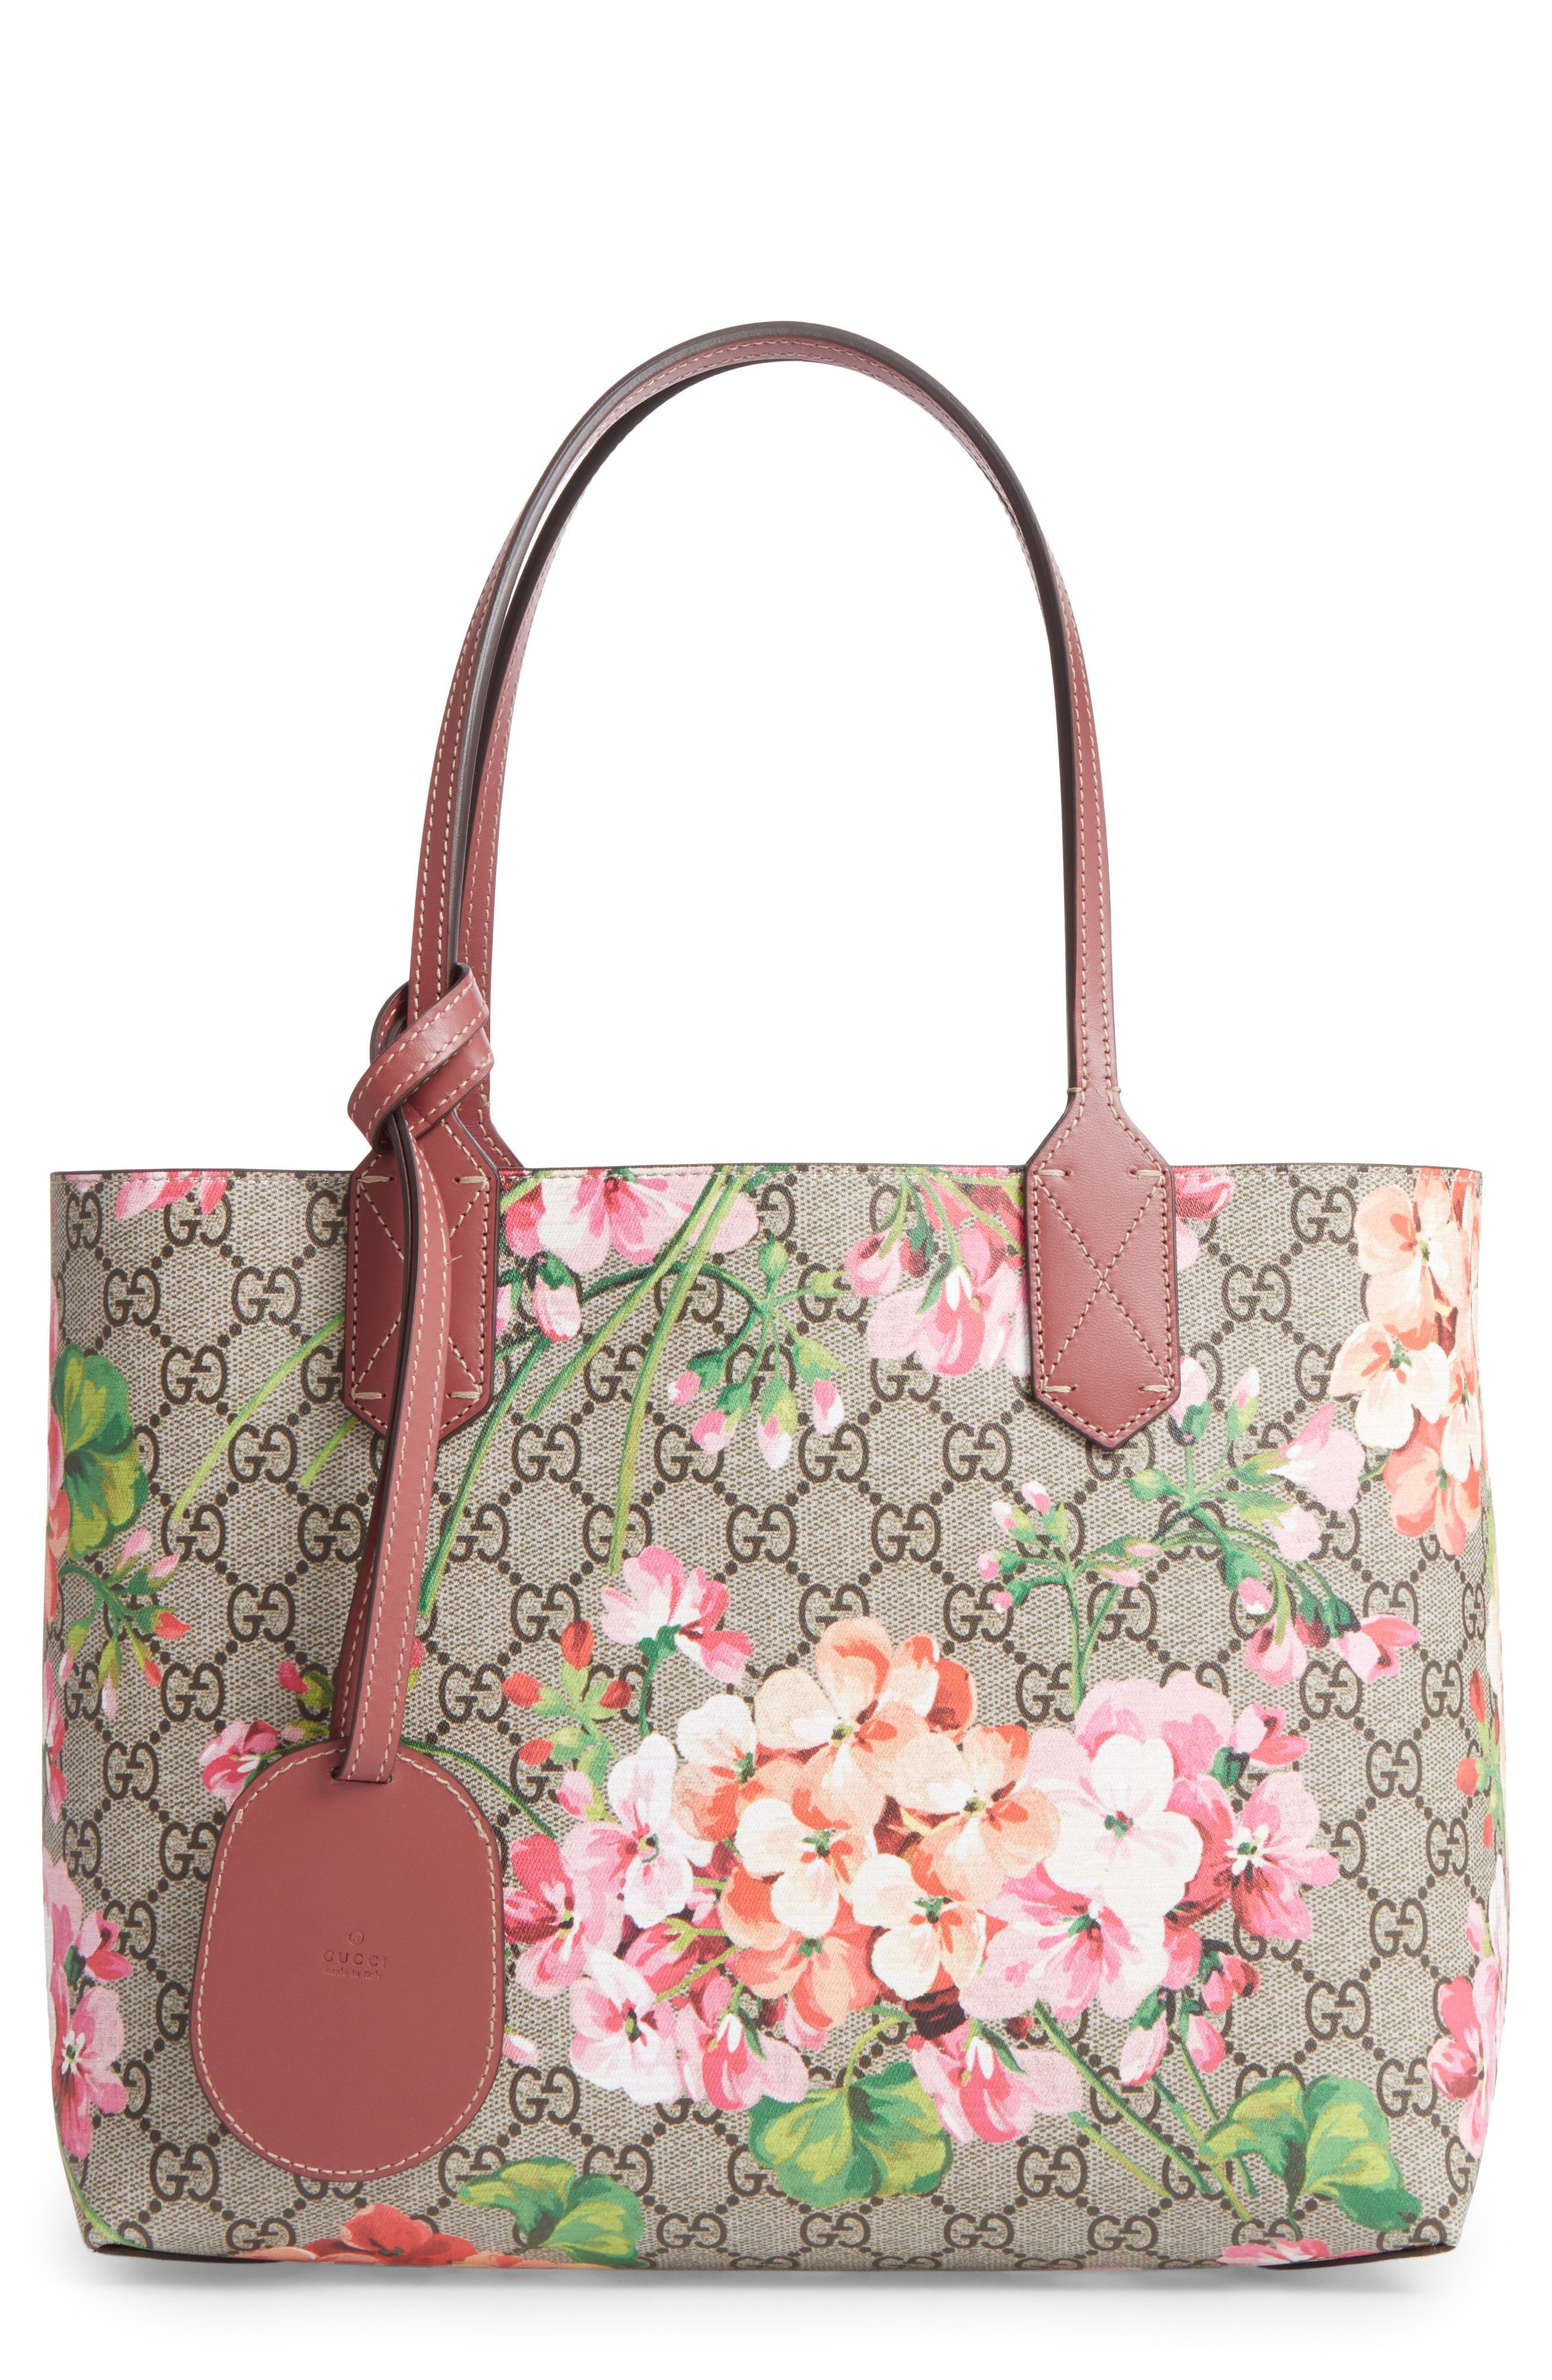 34f441be473 New Gucci Small GG Blooms Reversible Canvas Leather Tote fashion online.    980   shop.seehandbags